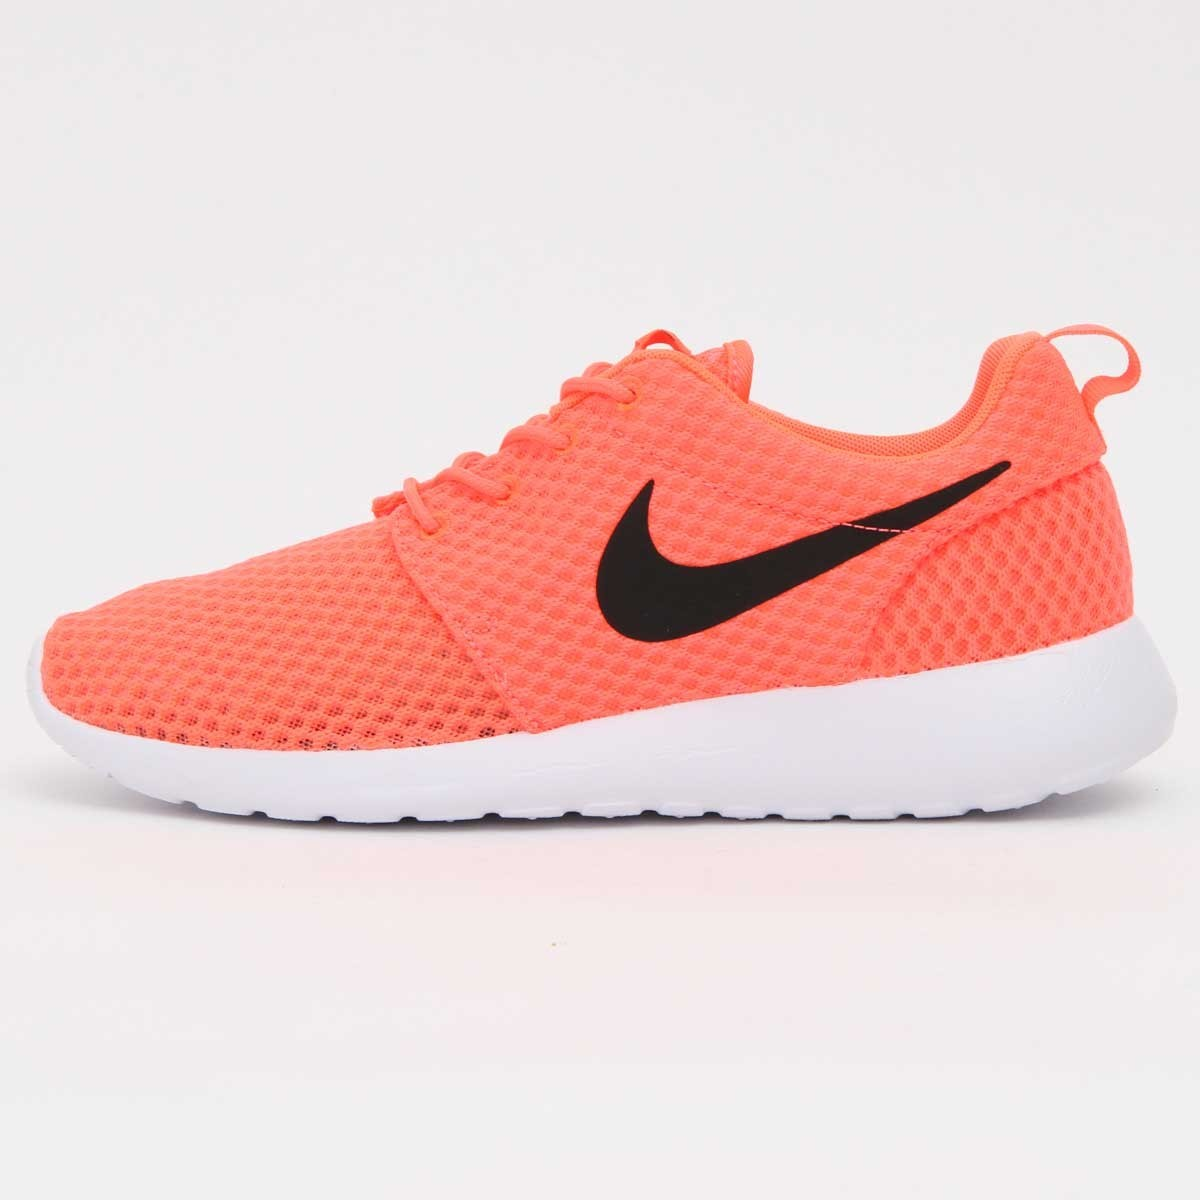 Nike Roshe Run BR (Breeze) Hommes Trainers Lave Chaude/Noir/Blanc 718552-801